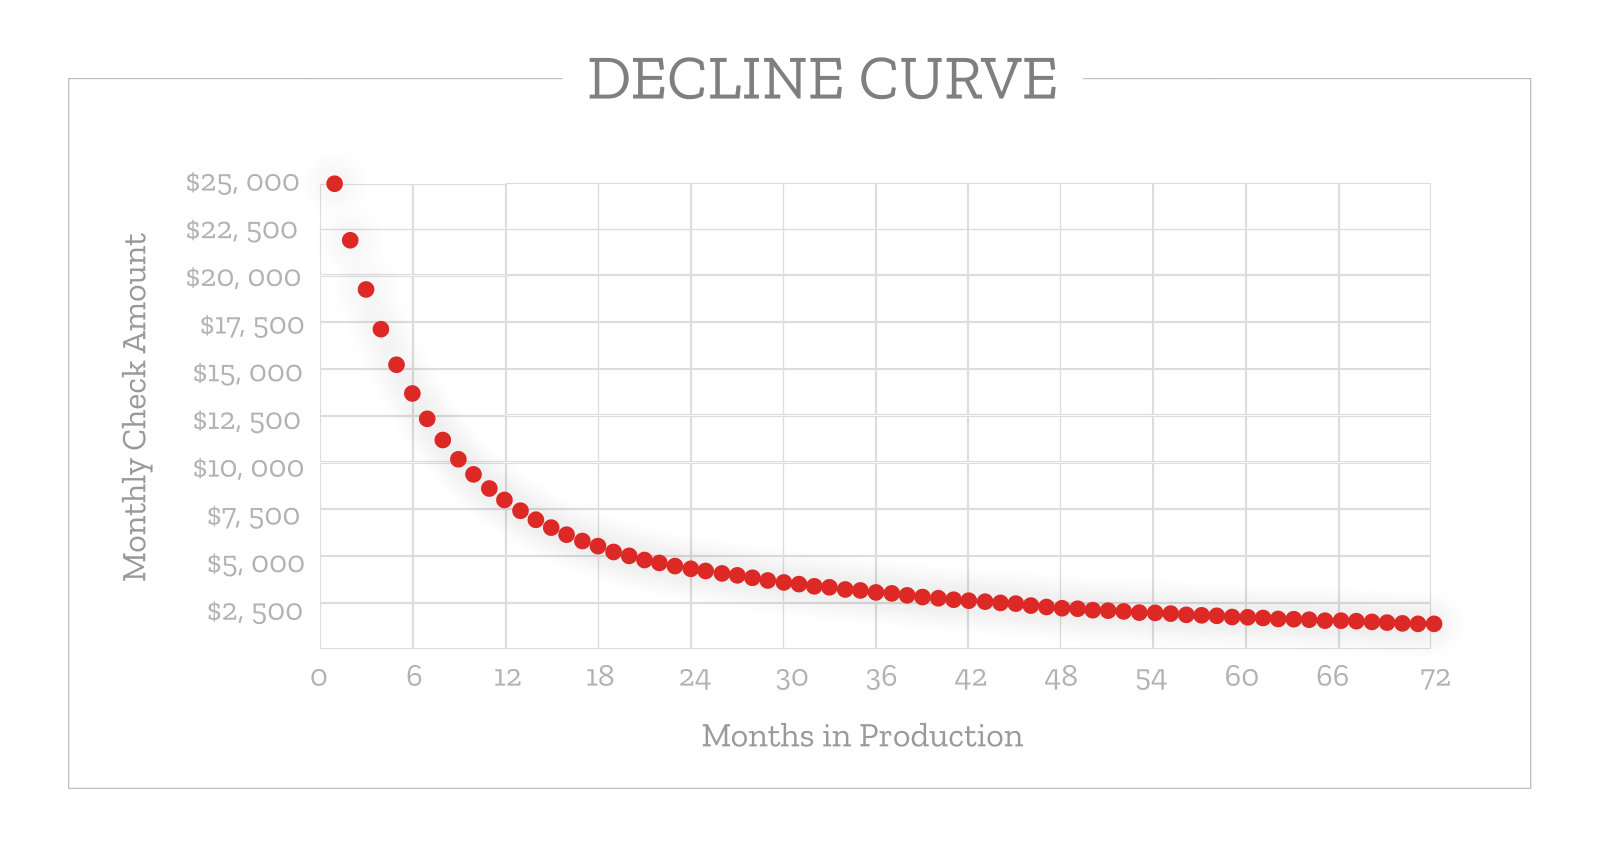 Oil and Gas Production Decline Curve